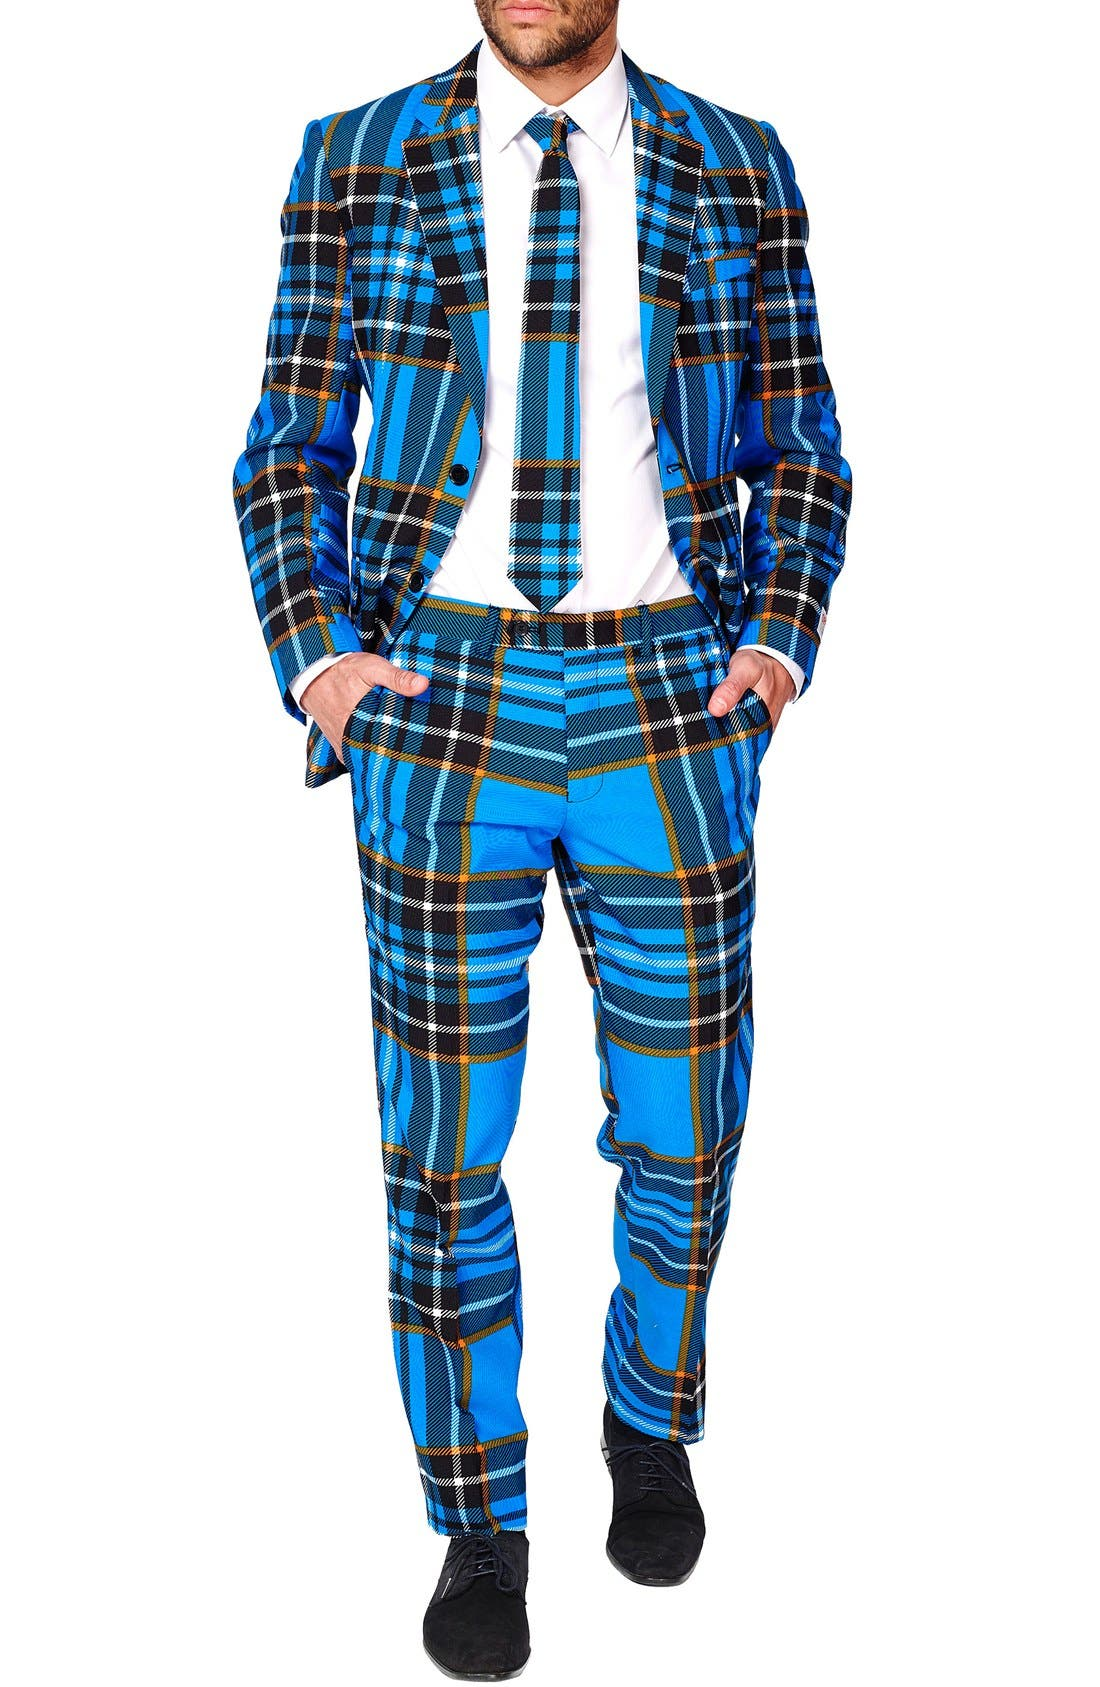 Main Image - OppoSuits 'Braveheart' Trim Fit Suit with Tie